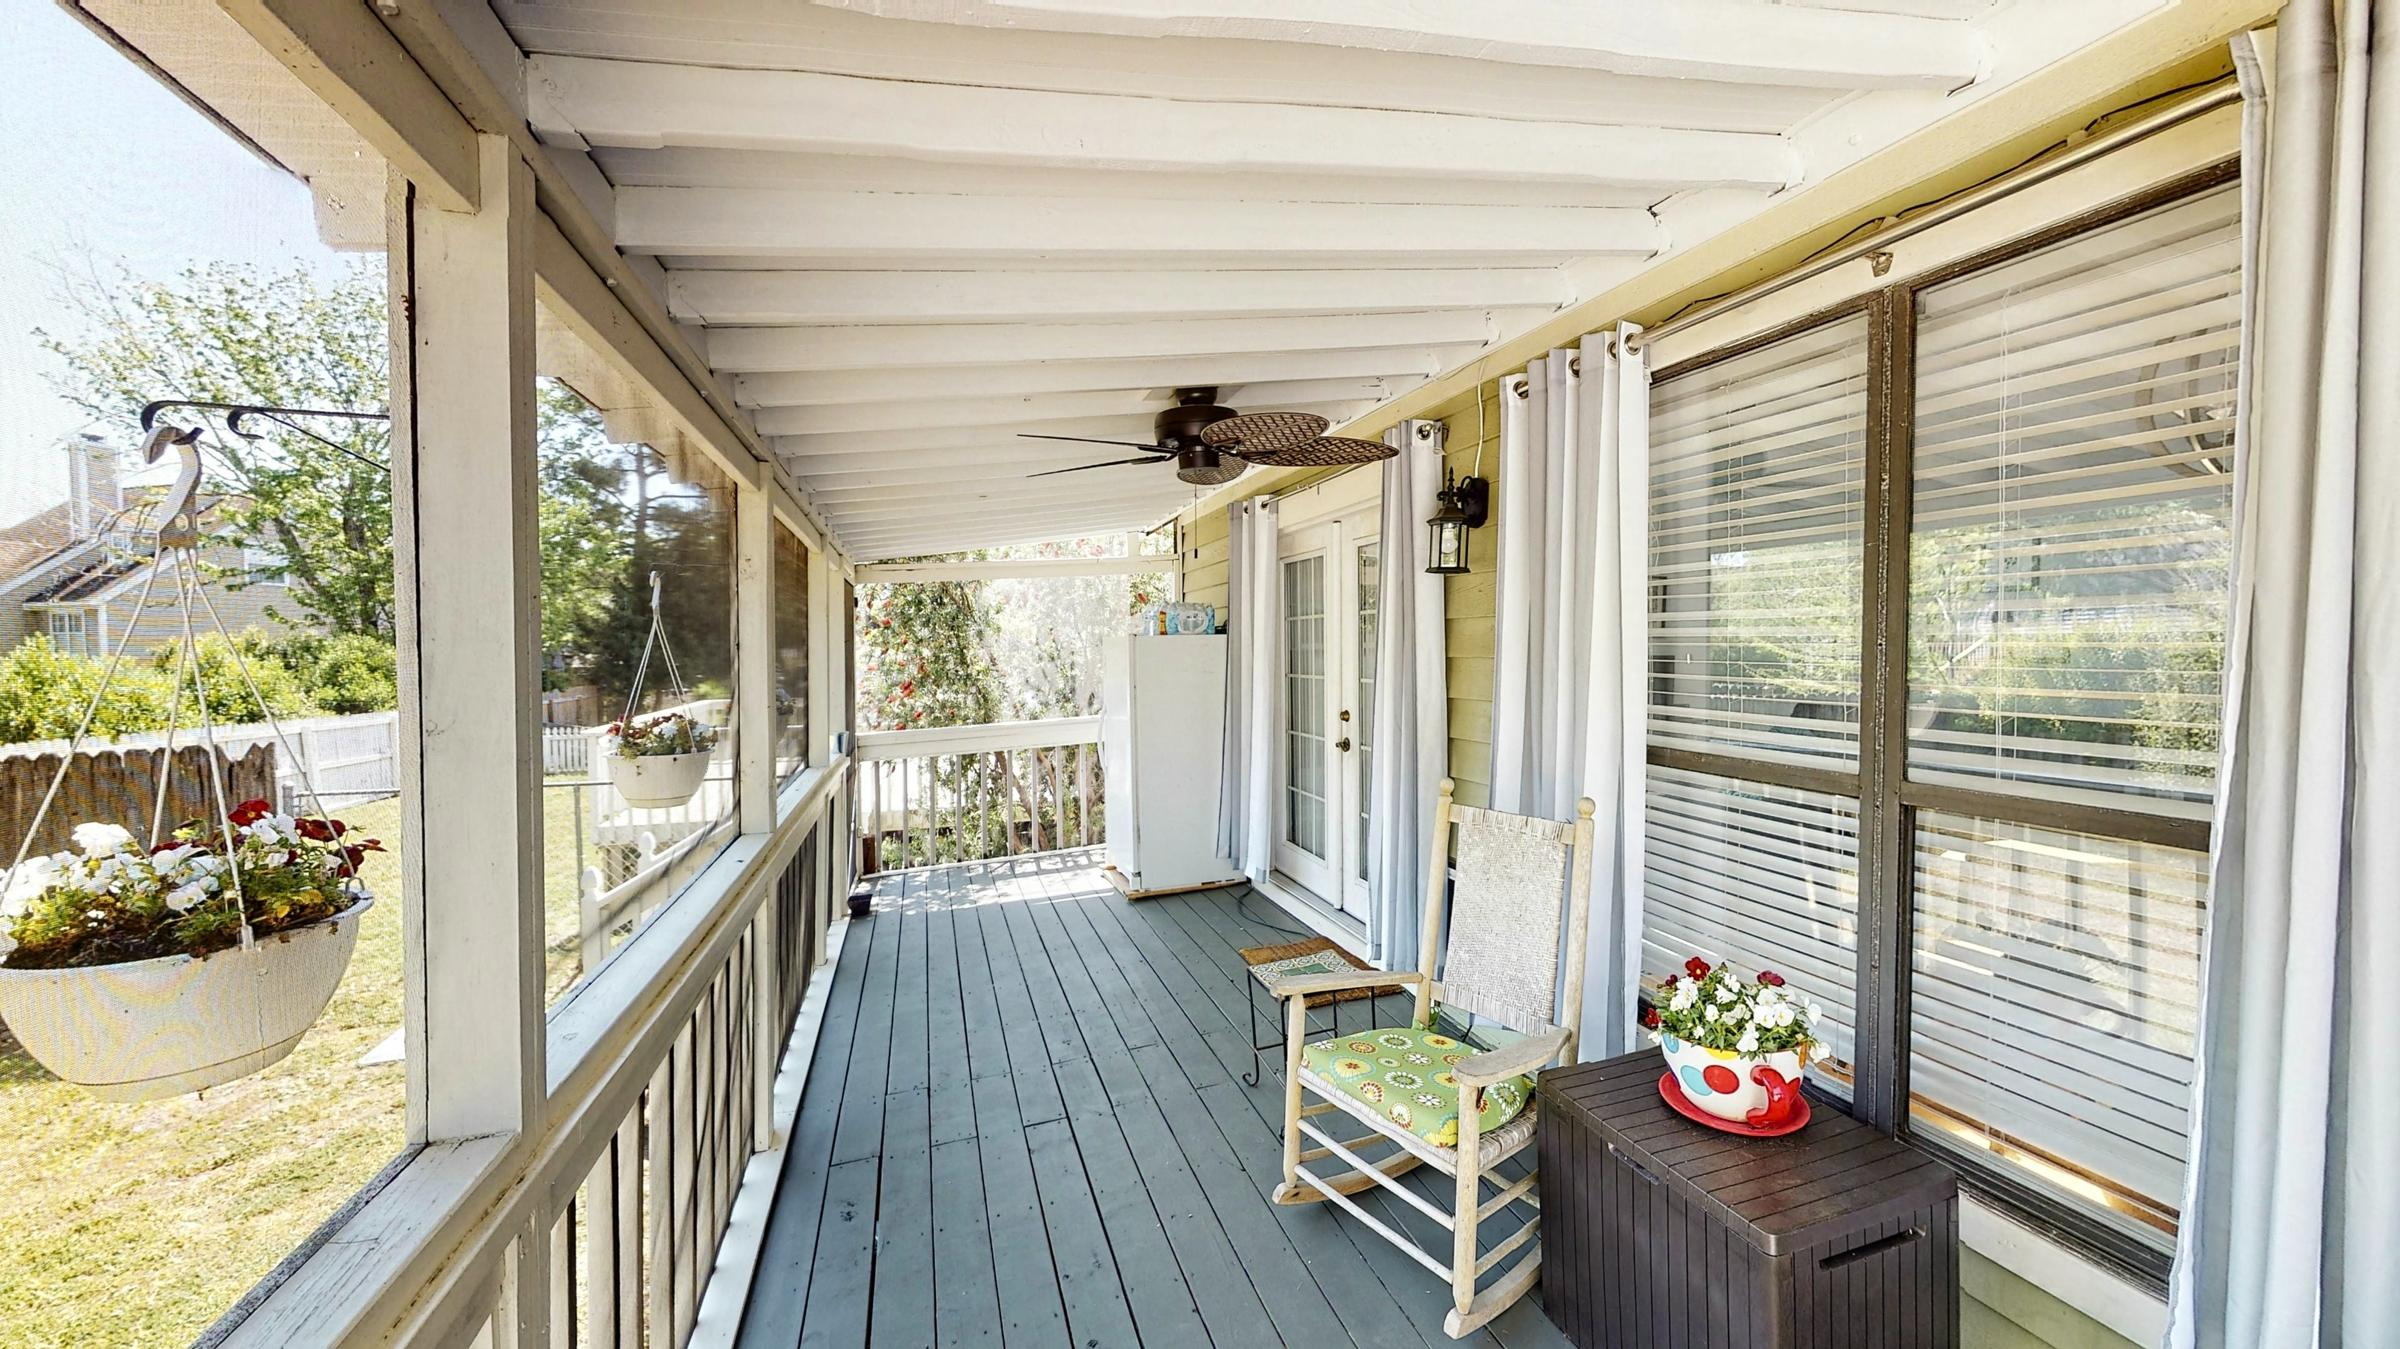 Pirates Cove Homes For Sale - 1528 Privateer, Mount Pleasant, SC - 5